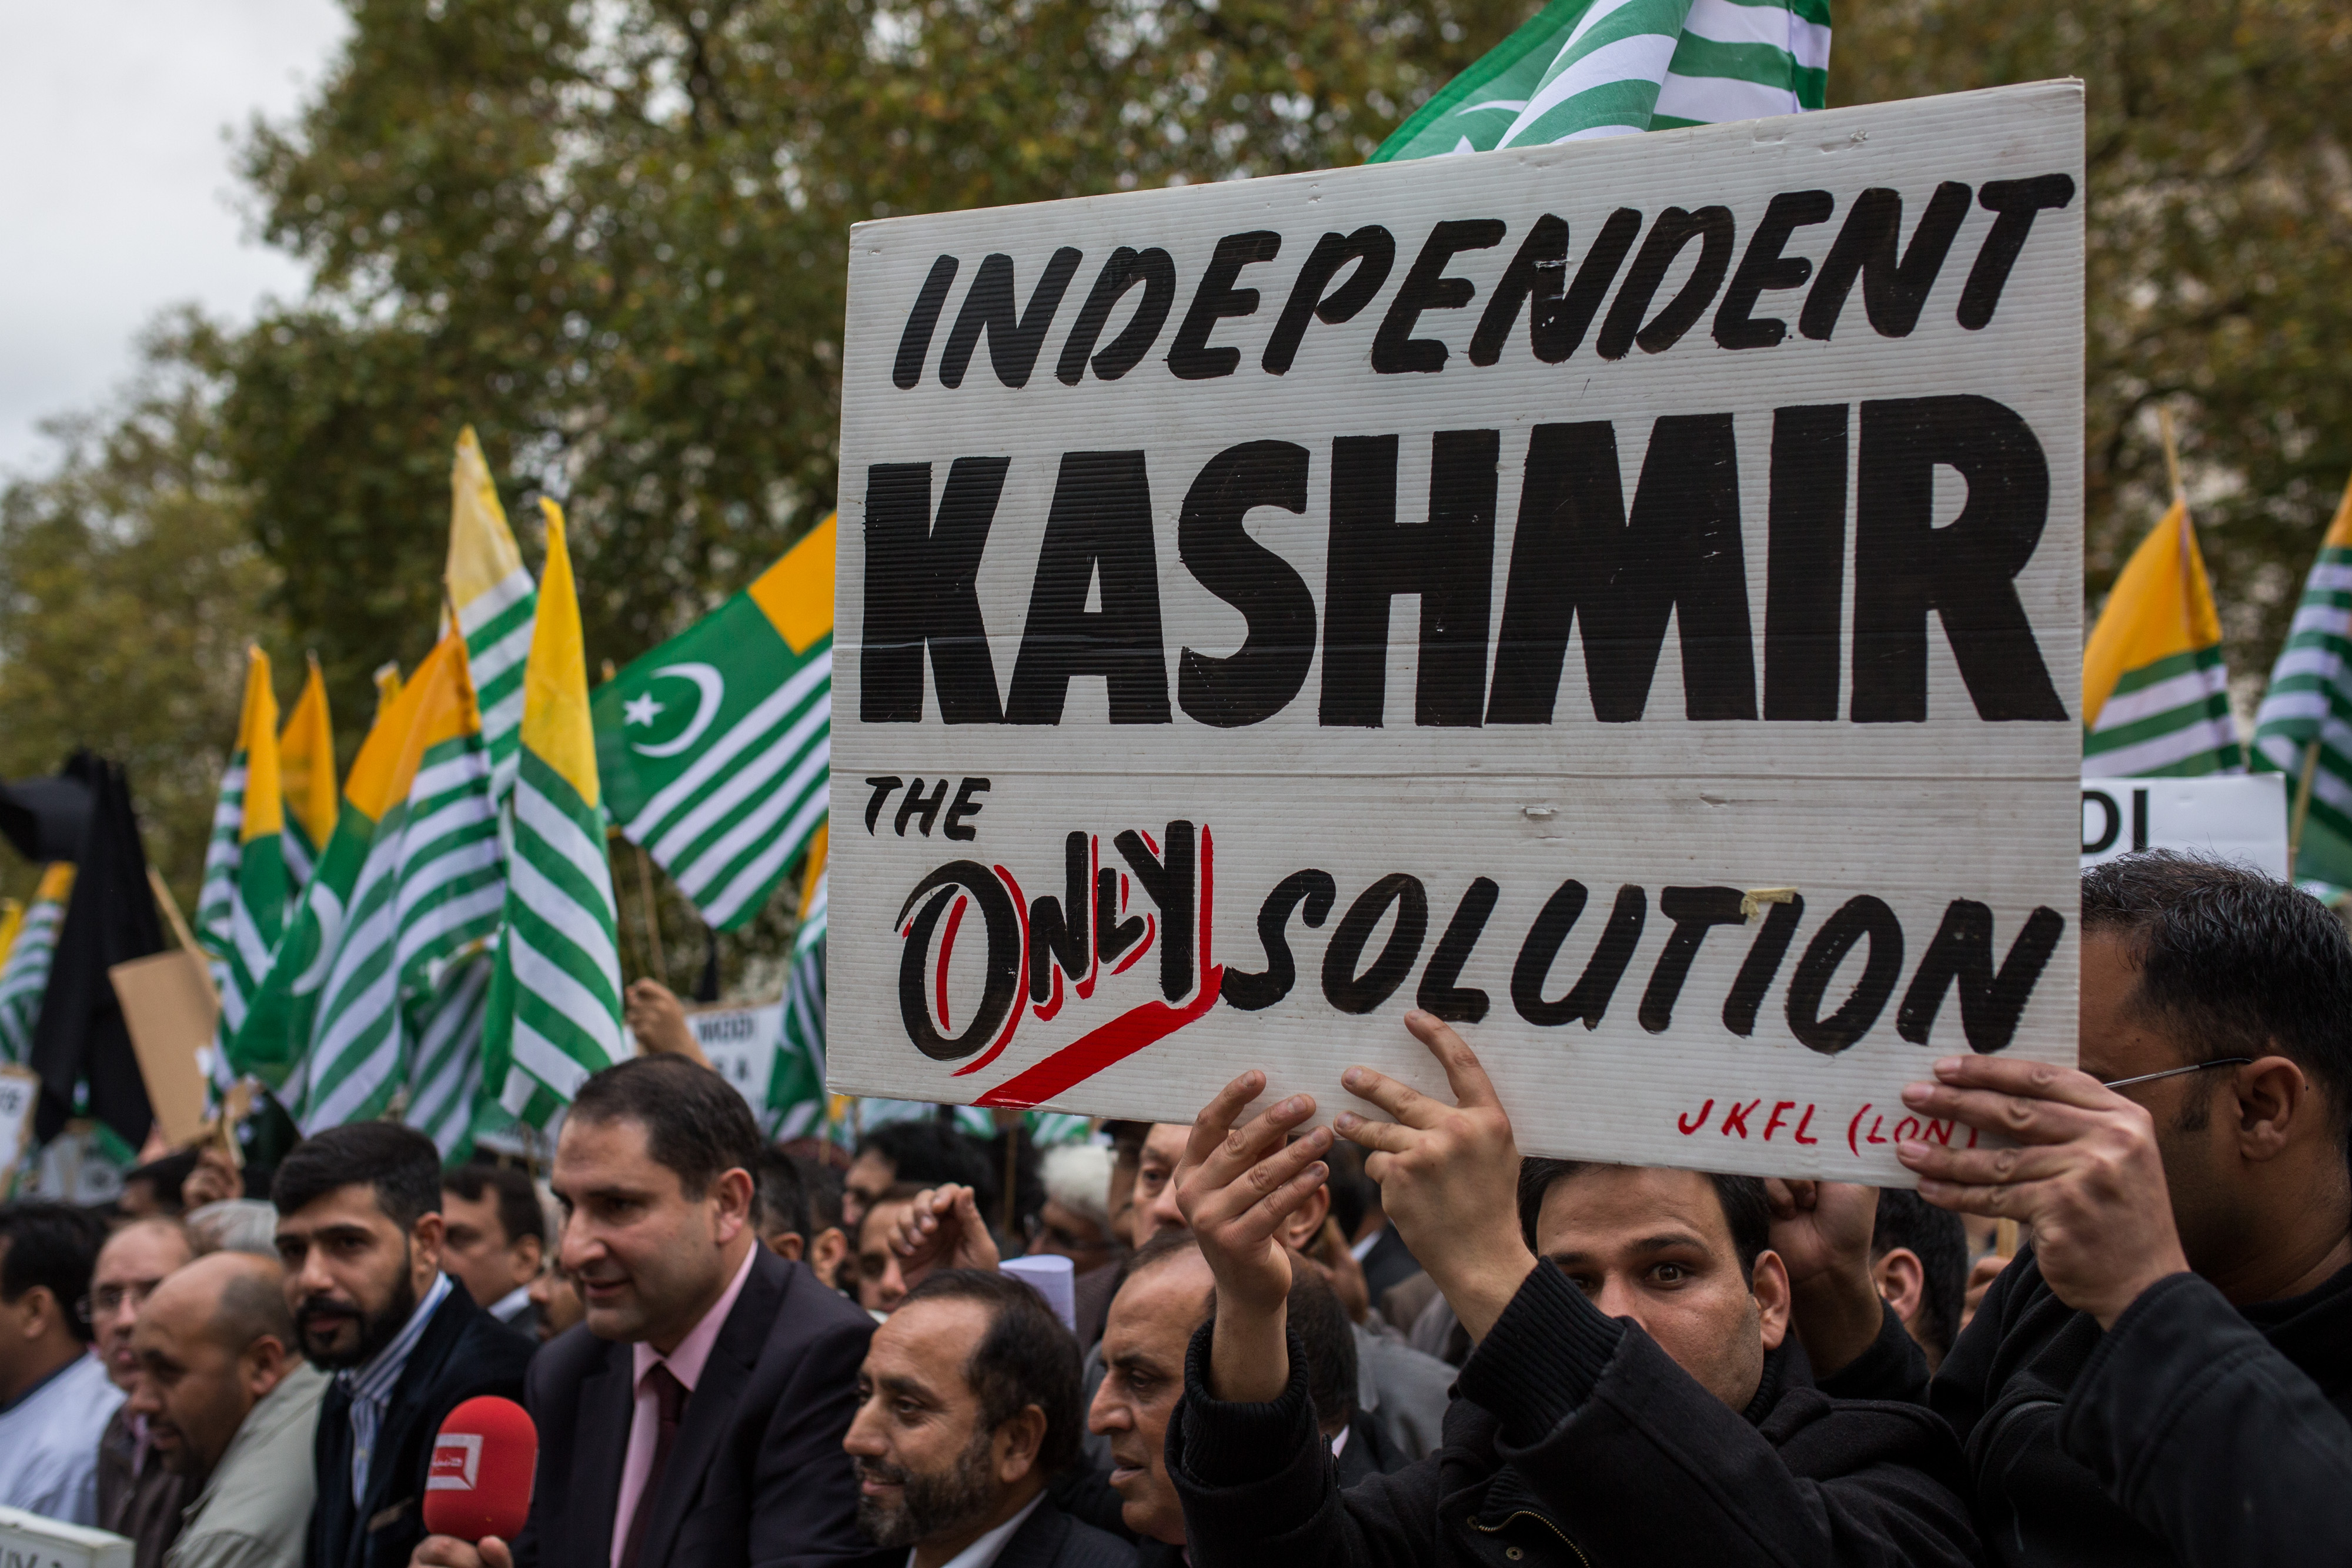 An estimated 5,000-10,000 protesters are expected to take part in the Free Kashmir protest. (Photo by Rob Stothard/Getty Images)